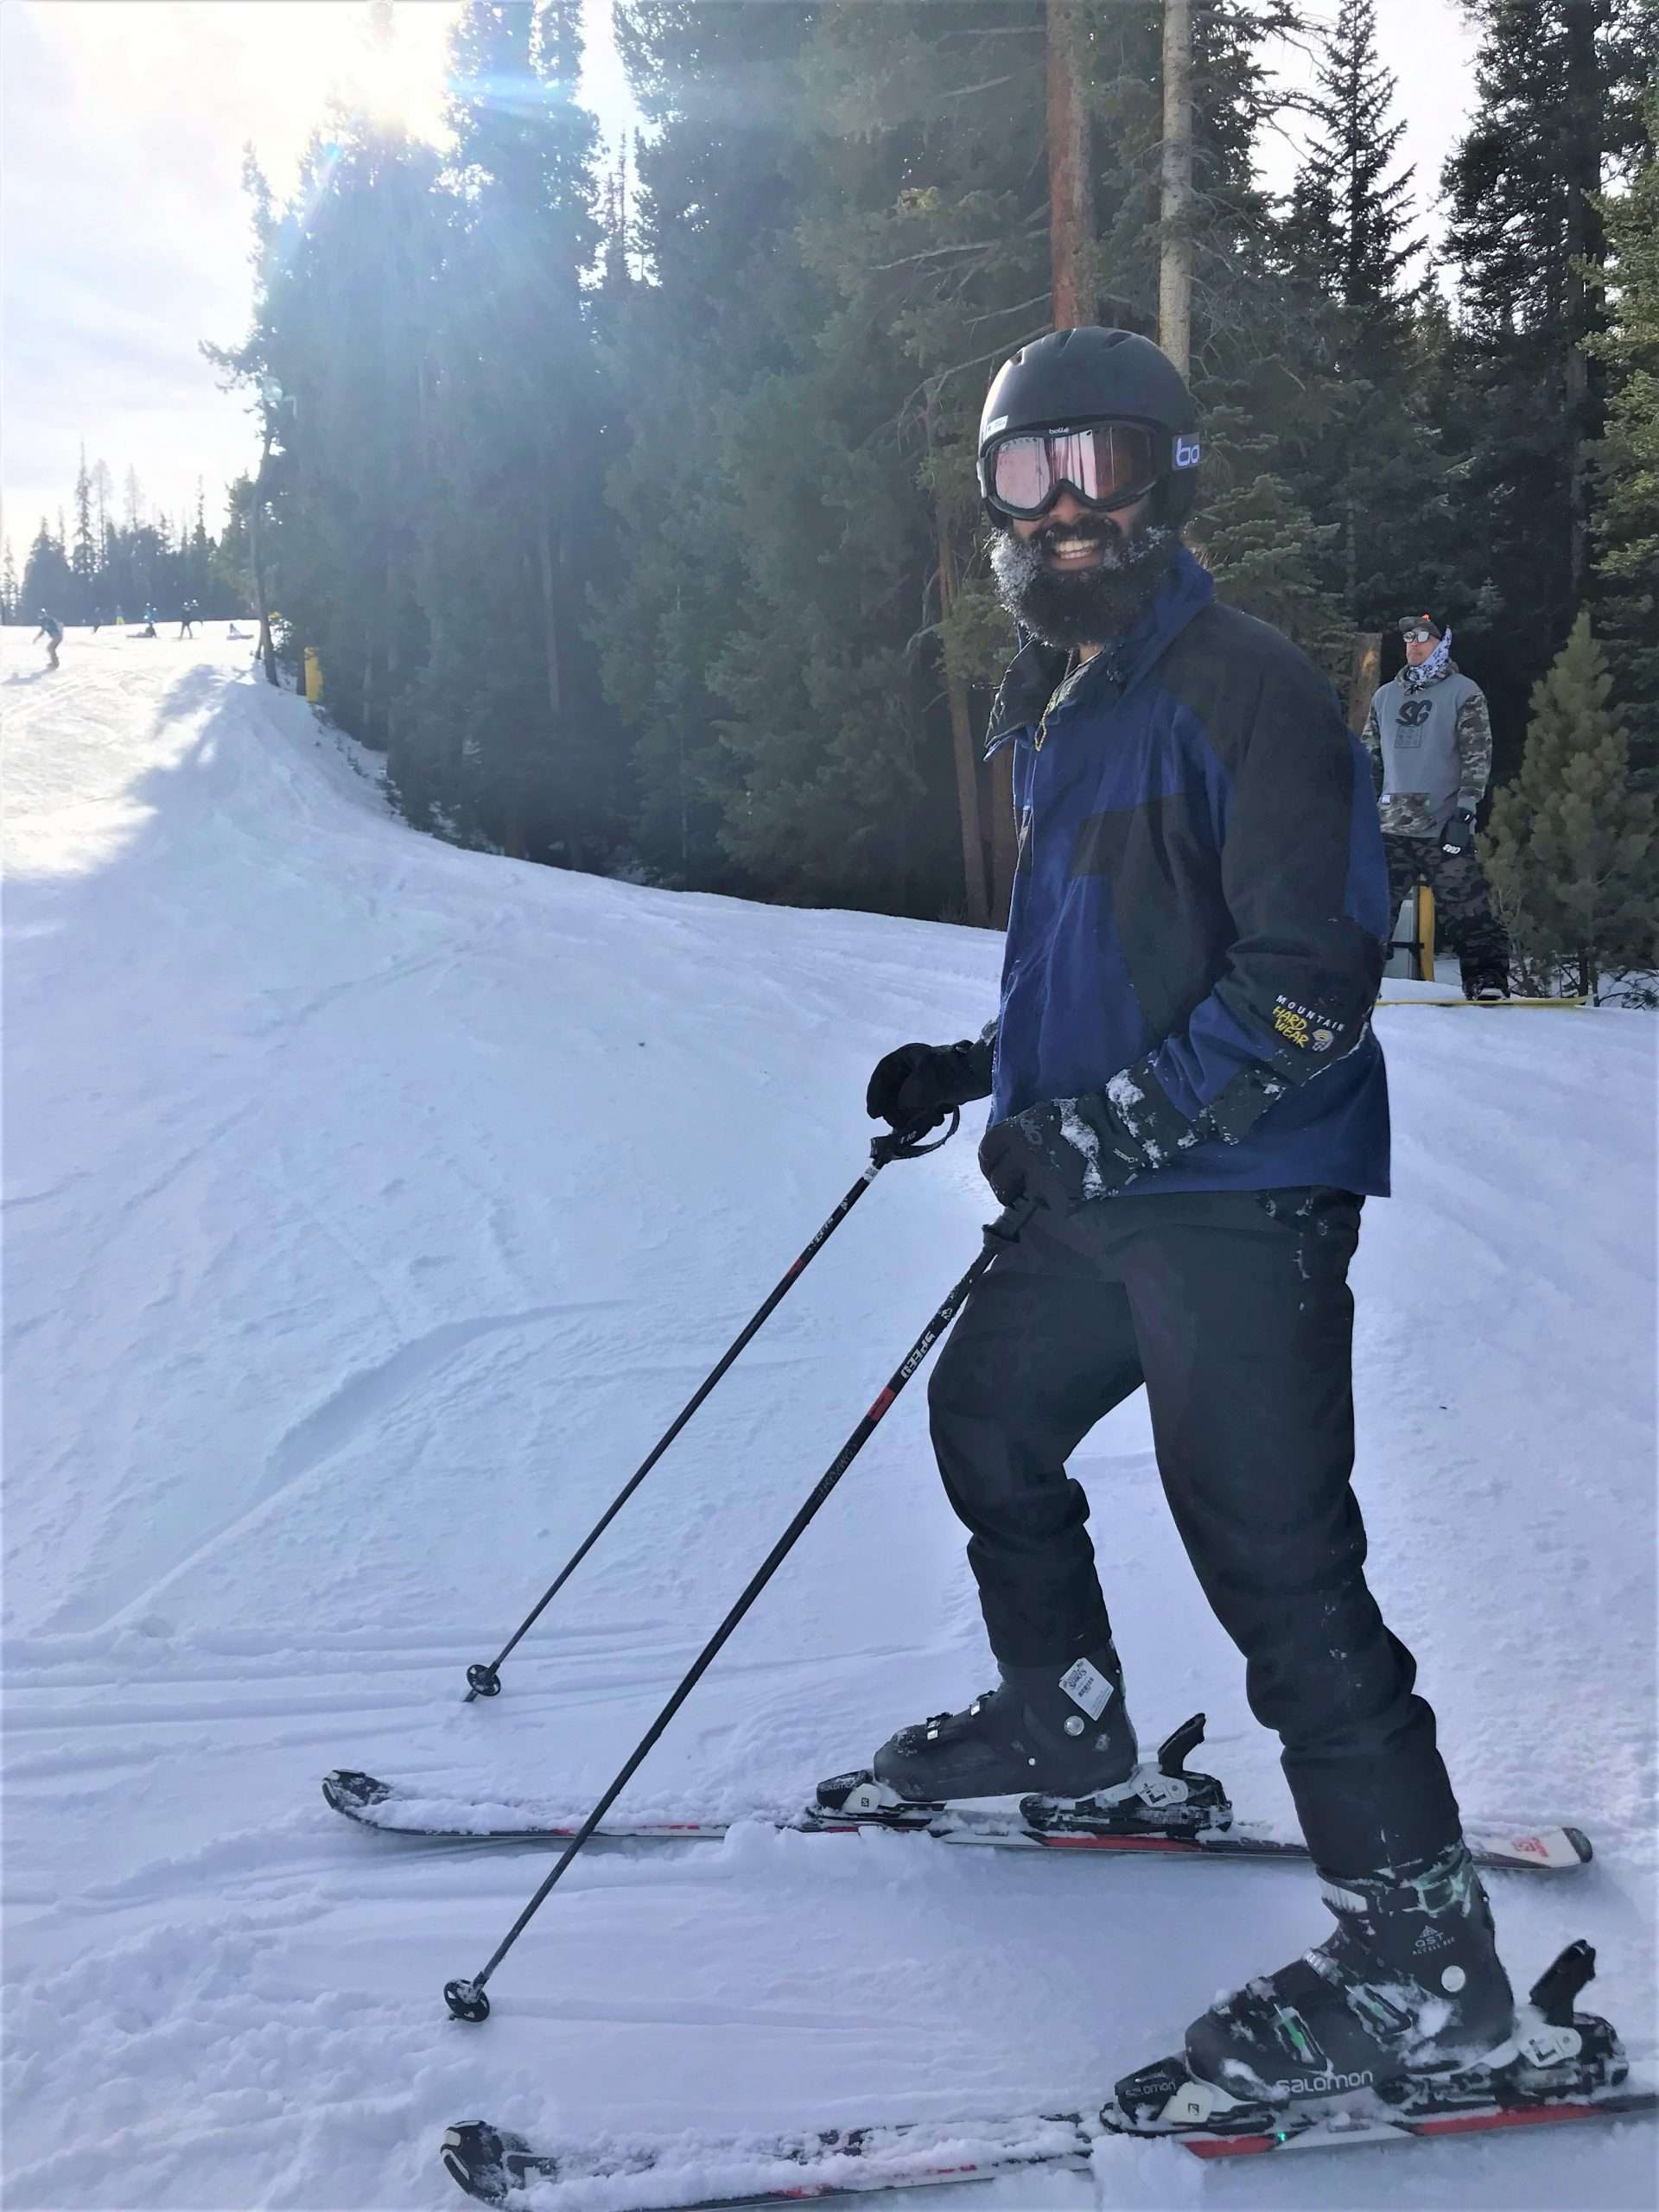 Skier stopped on blue run and smiling at camera